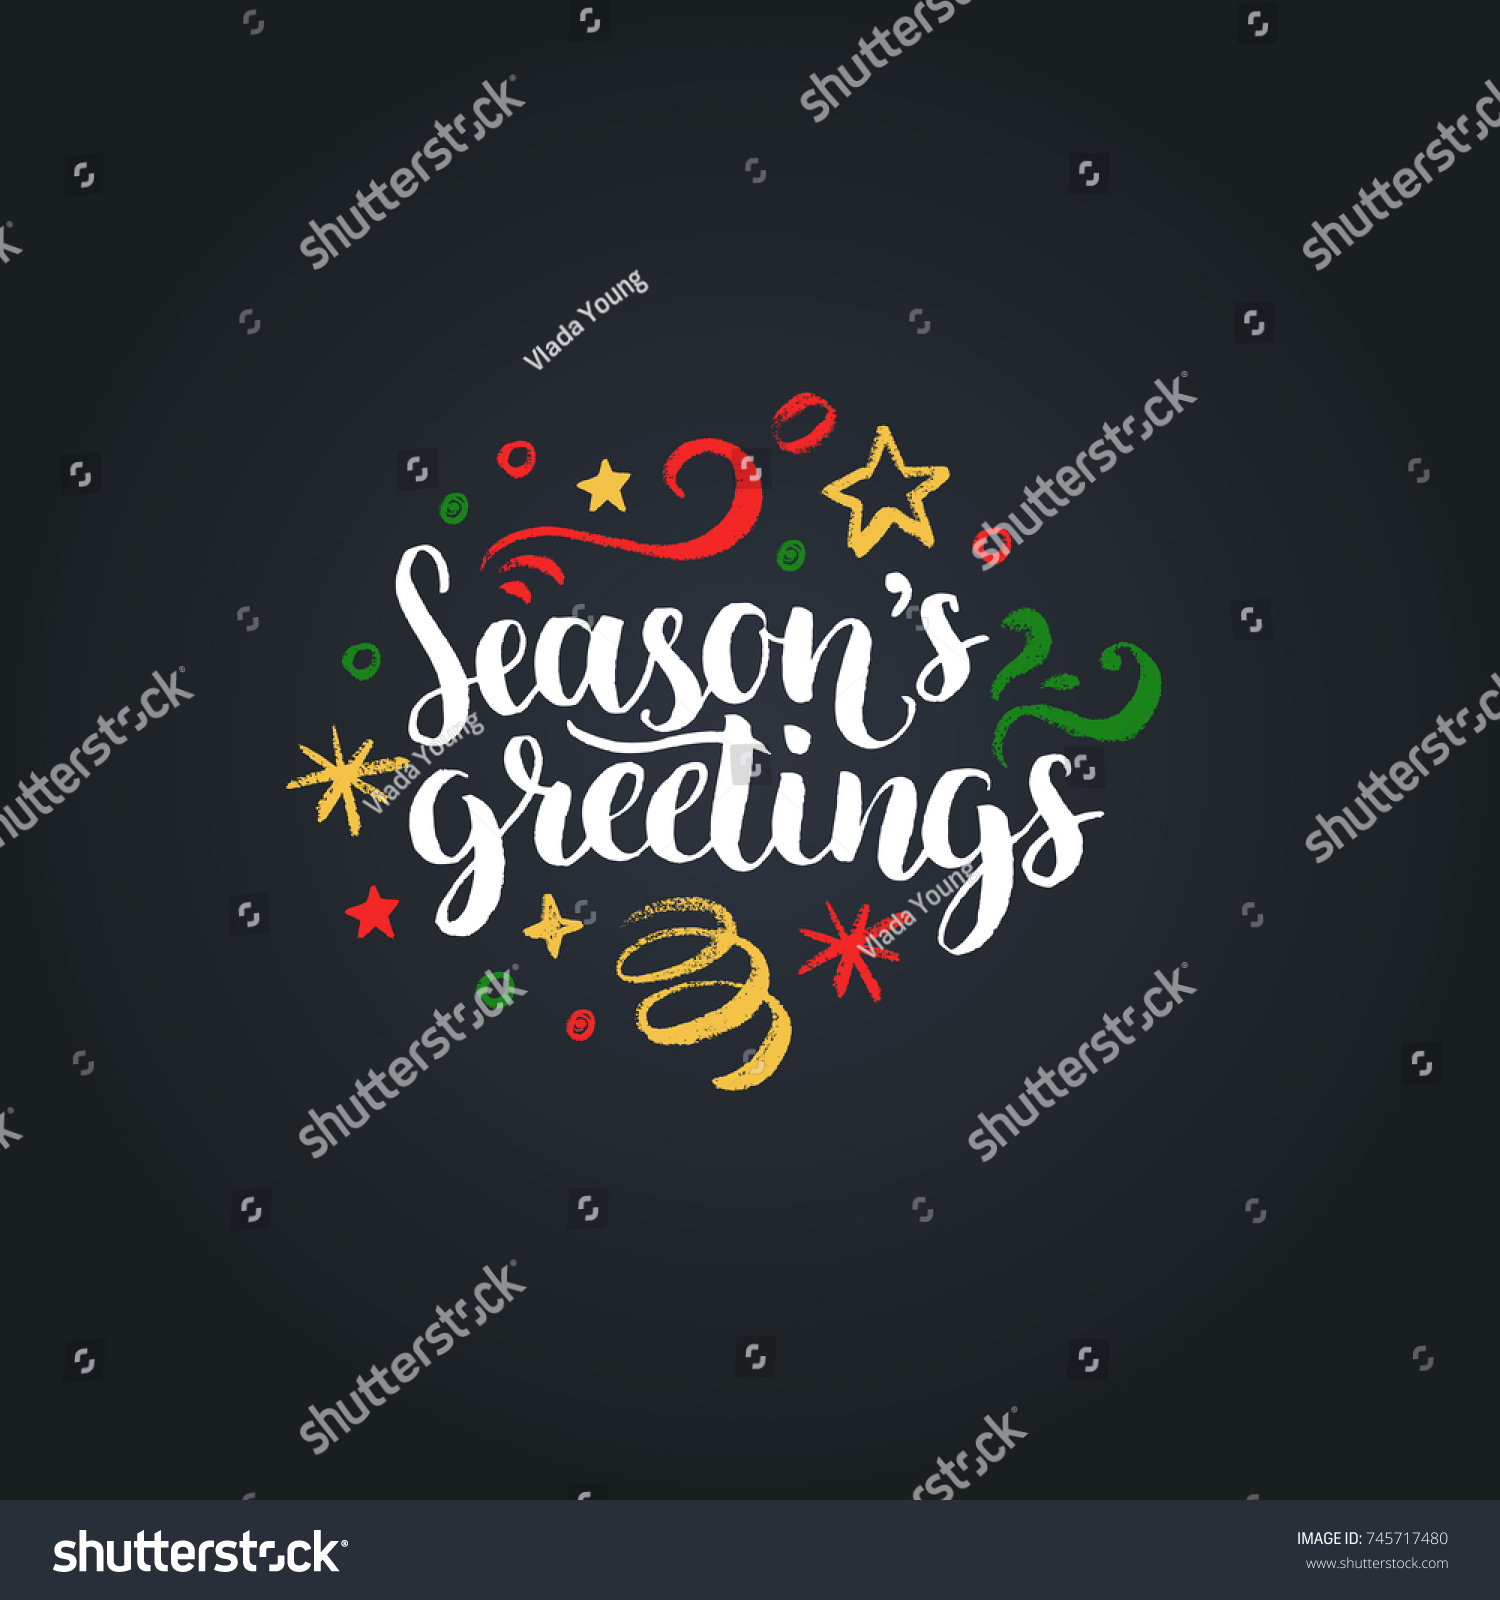 Seasons greetings lettering on black background stock vector seasons greetings lettering on black background vector hand drawn christmas illustration happy holidays greeting kristyandbryce Choice Image